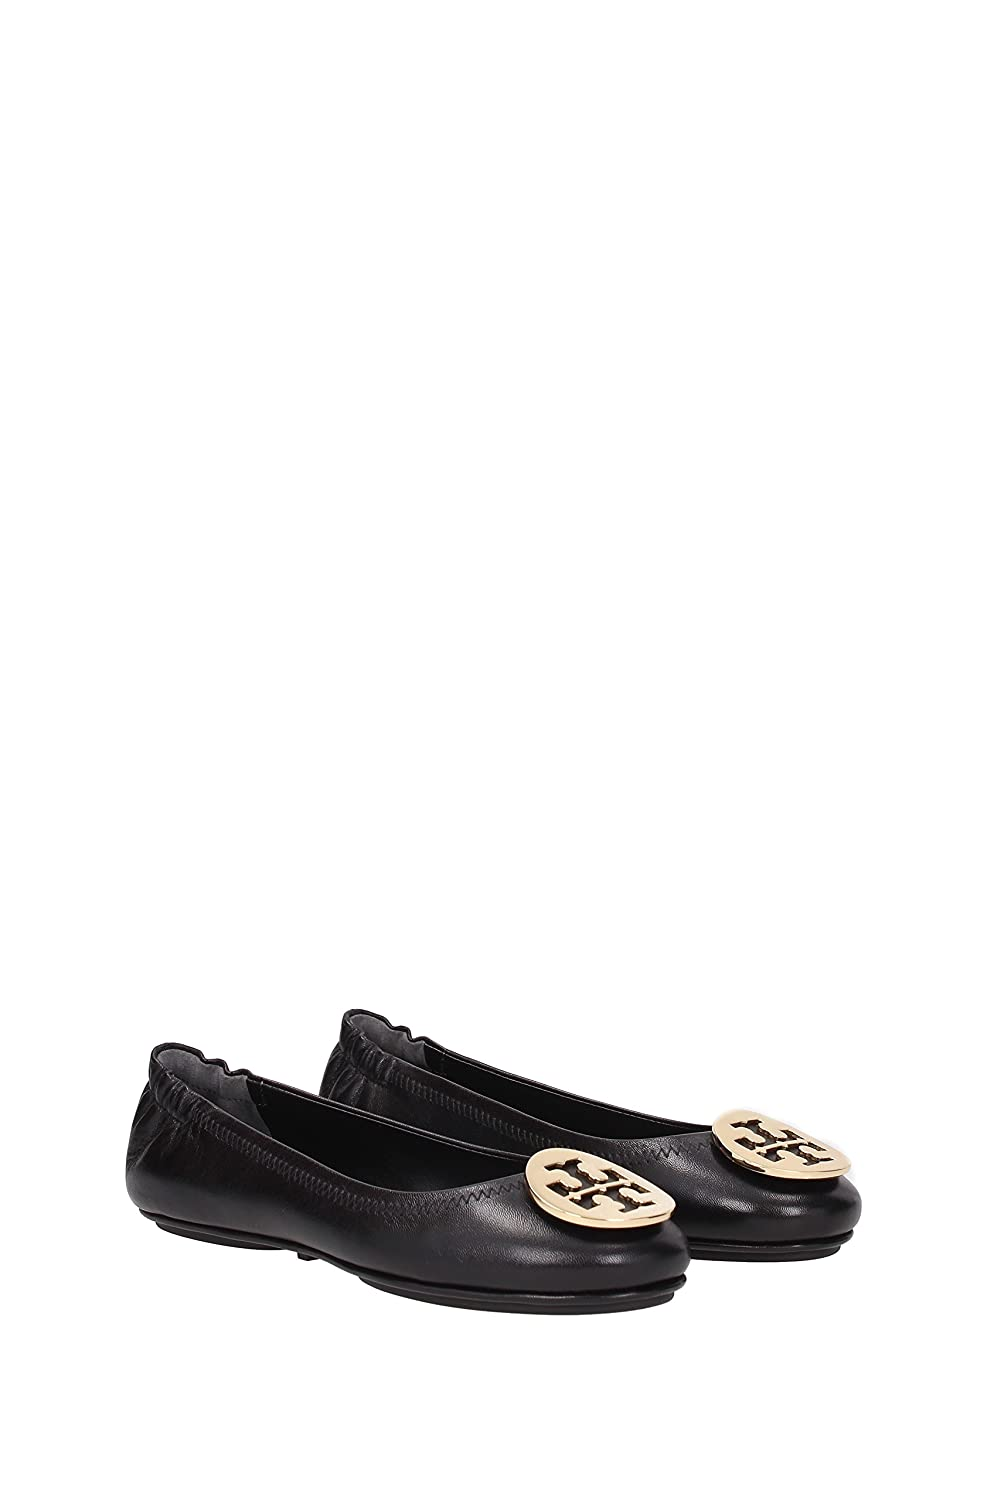 Amazon.com | Tory Burch Reva Shoes Ballet Minnie Travel Flats Soft Naplak  Leather TB Logo | Flats